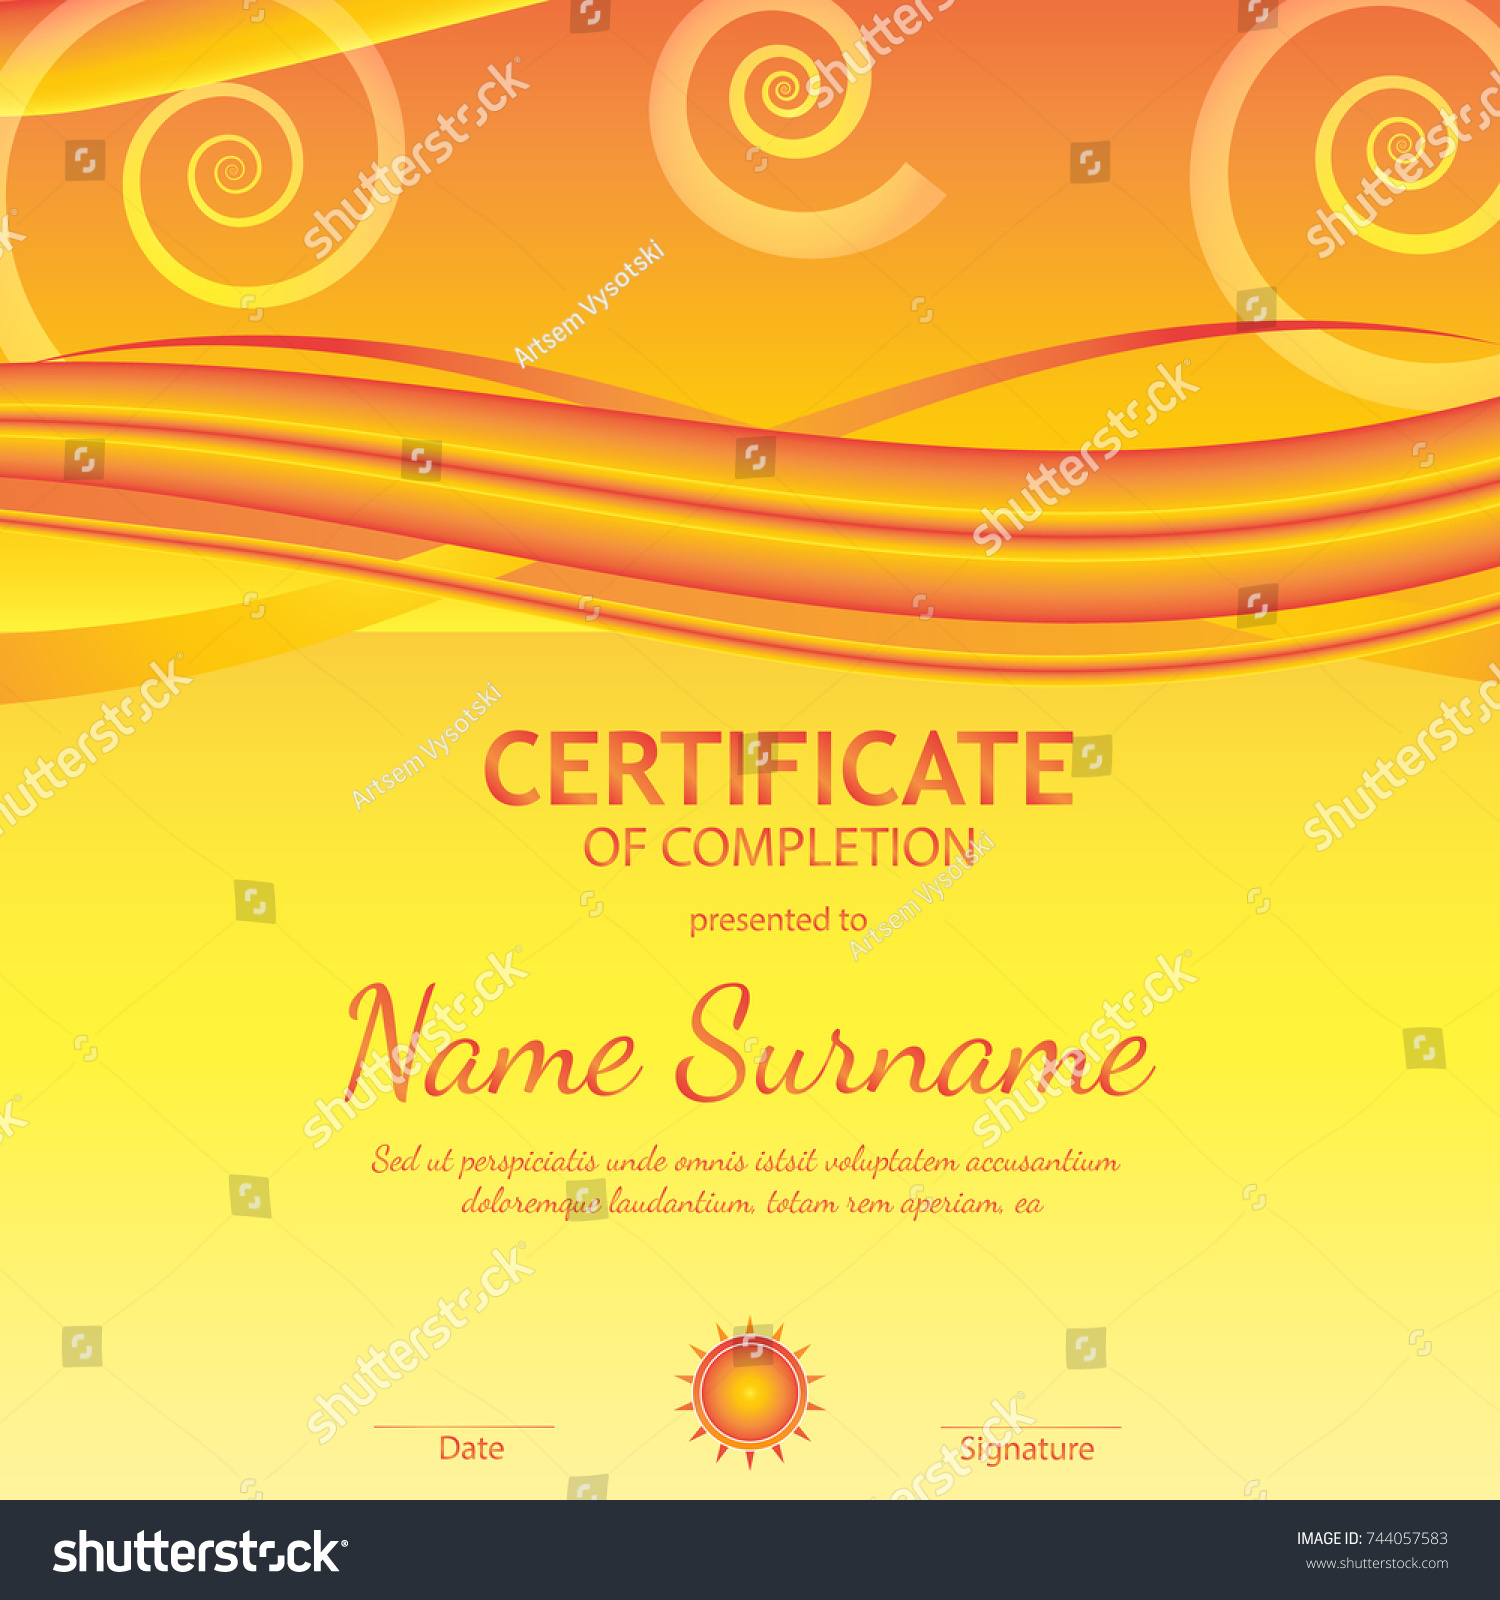 Certificate completion template orange soft wavy stock vector certificate of completion template with orange soft wavy light background vector illustration yadclub Images